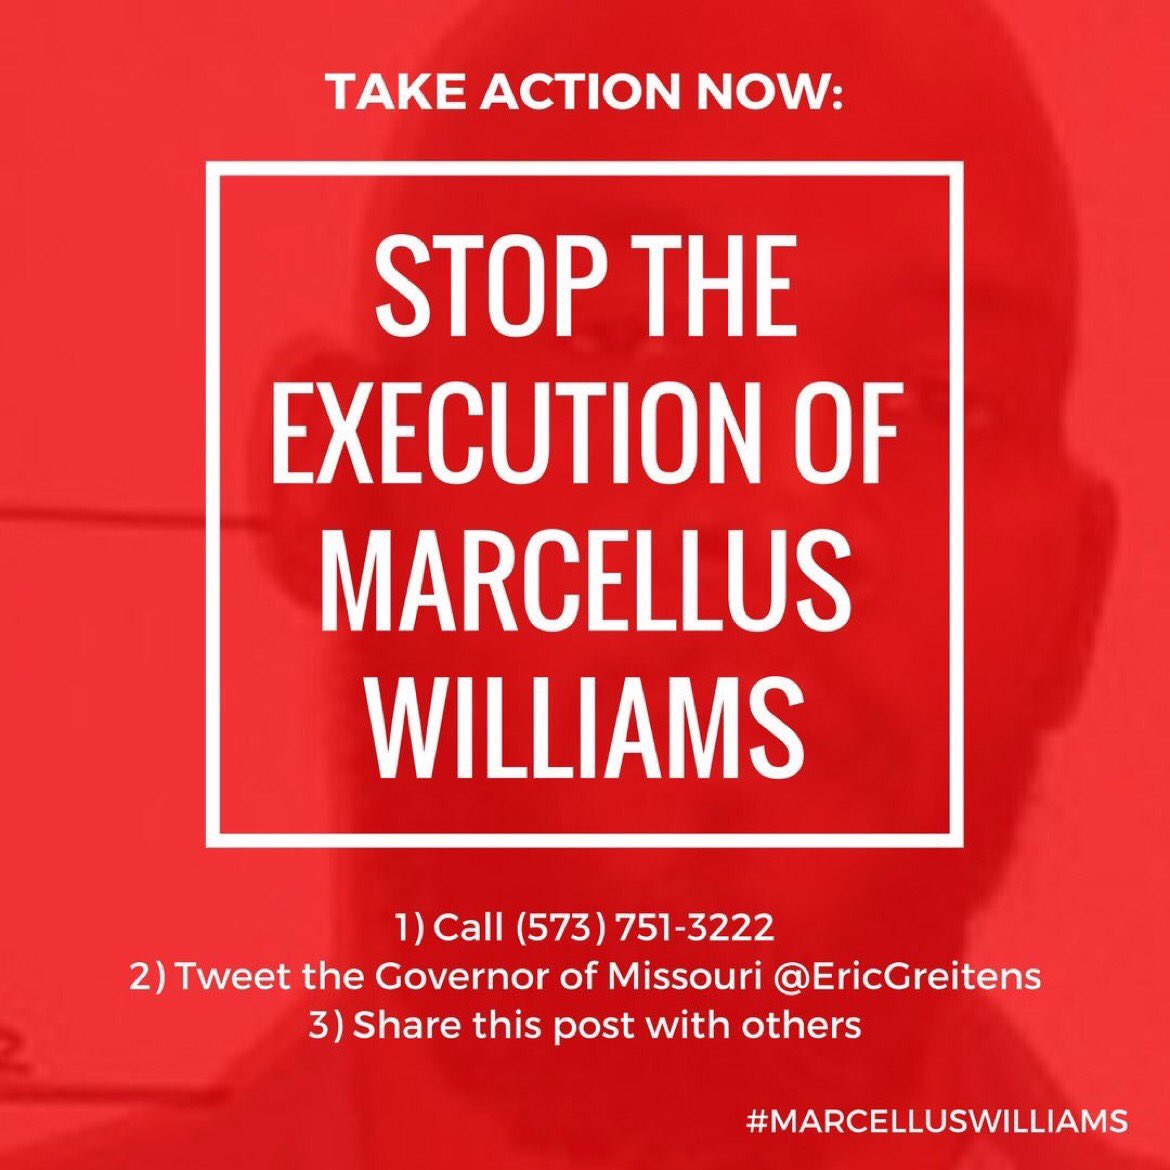 RT @UncleRUSH: Stop the execution of Marcellus Williams! https://t.co/nsLCVSNKHj